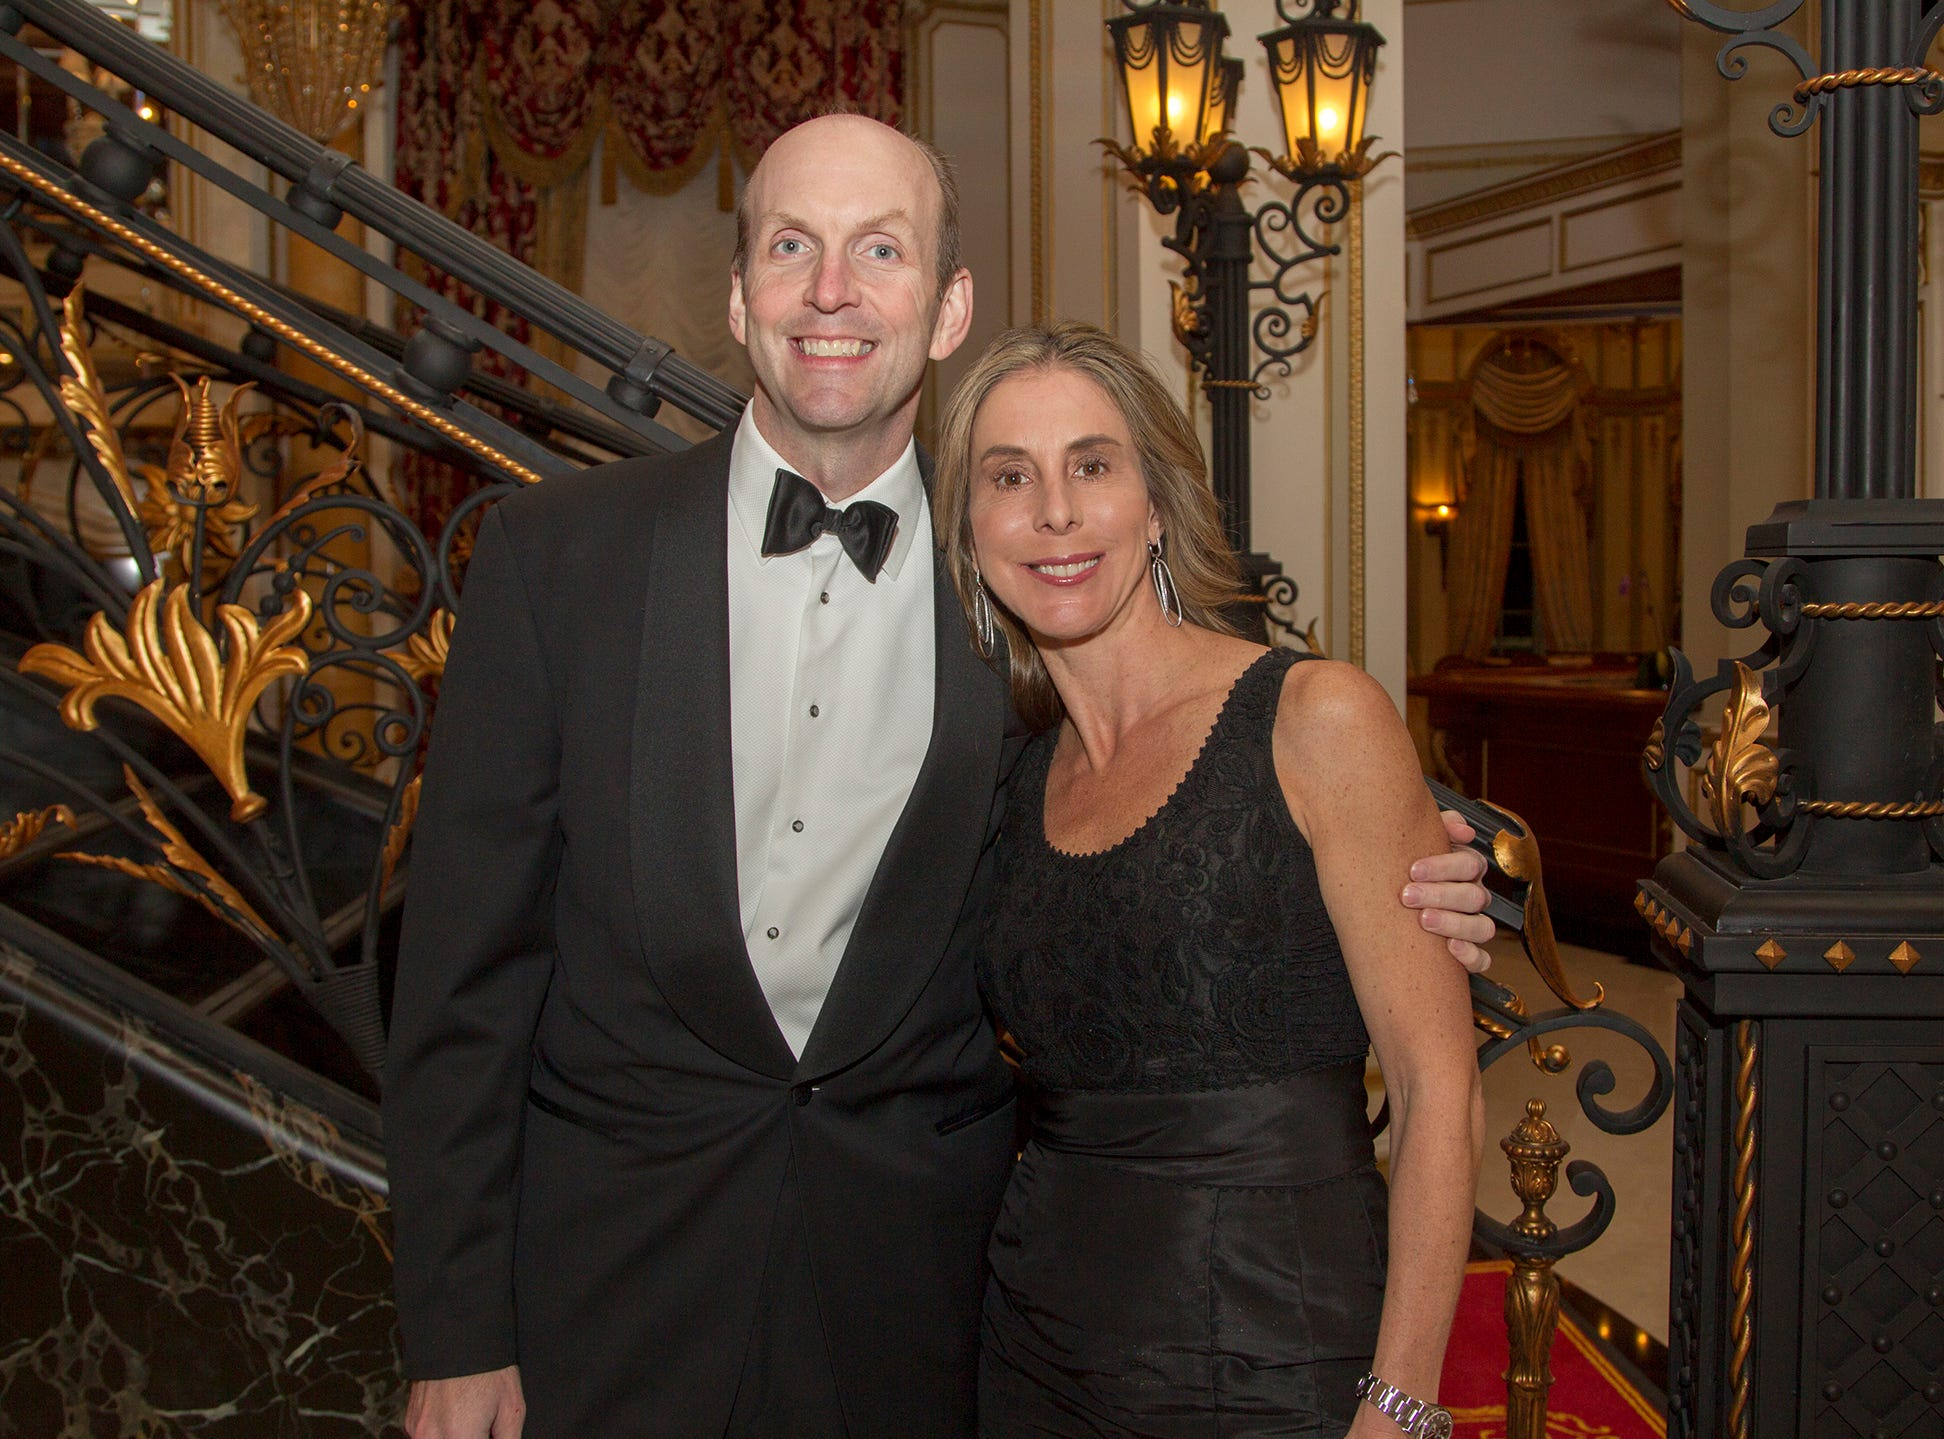 Duane and kathryn Sachs. The 72nd Annual Valley Ball gala at The Legacy Castle in Pompton Plains. 11/16/2018